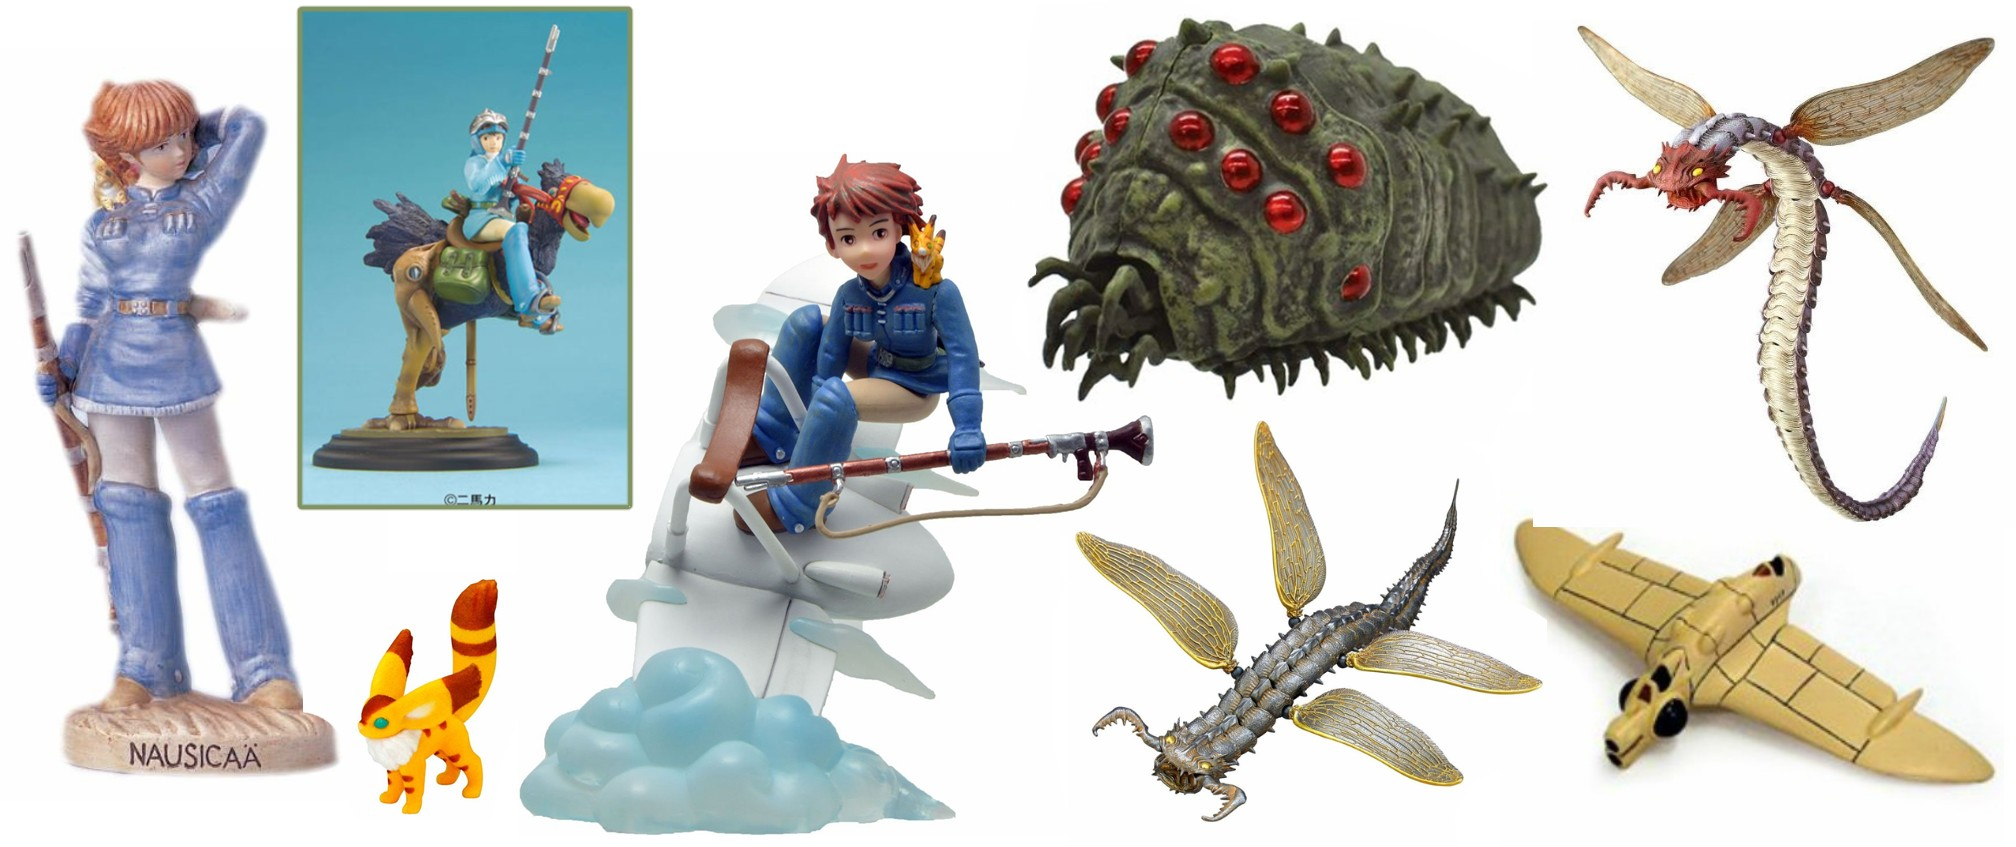 Nausicaa of the Valley of the Wind Figurines